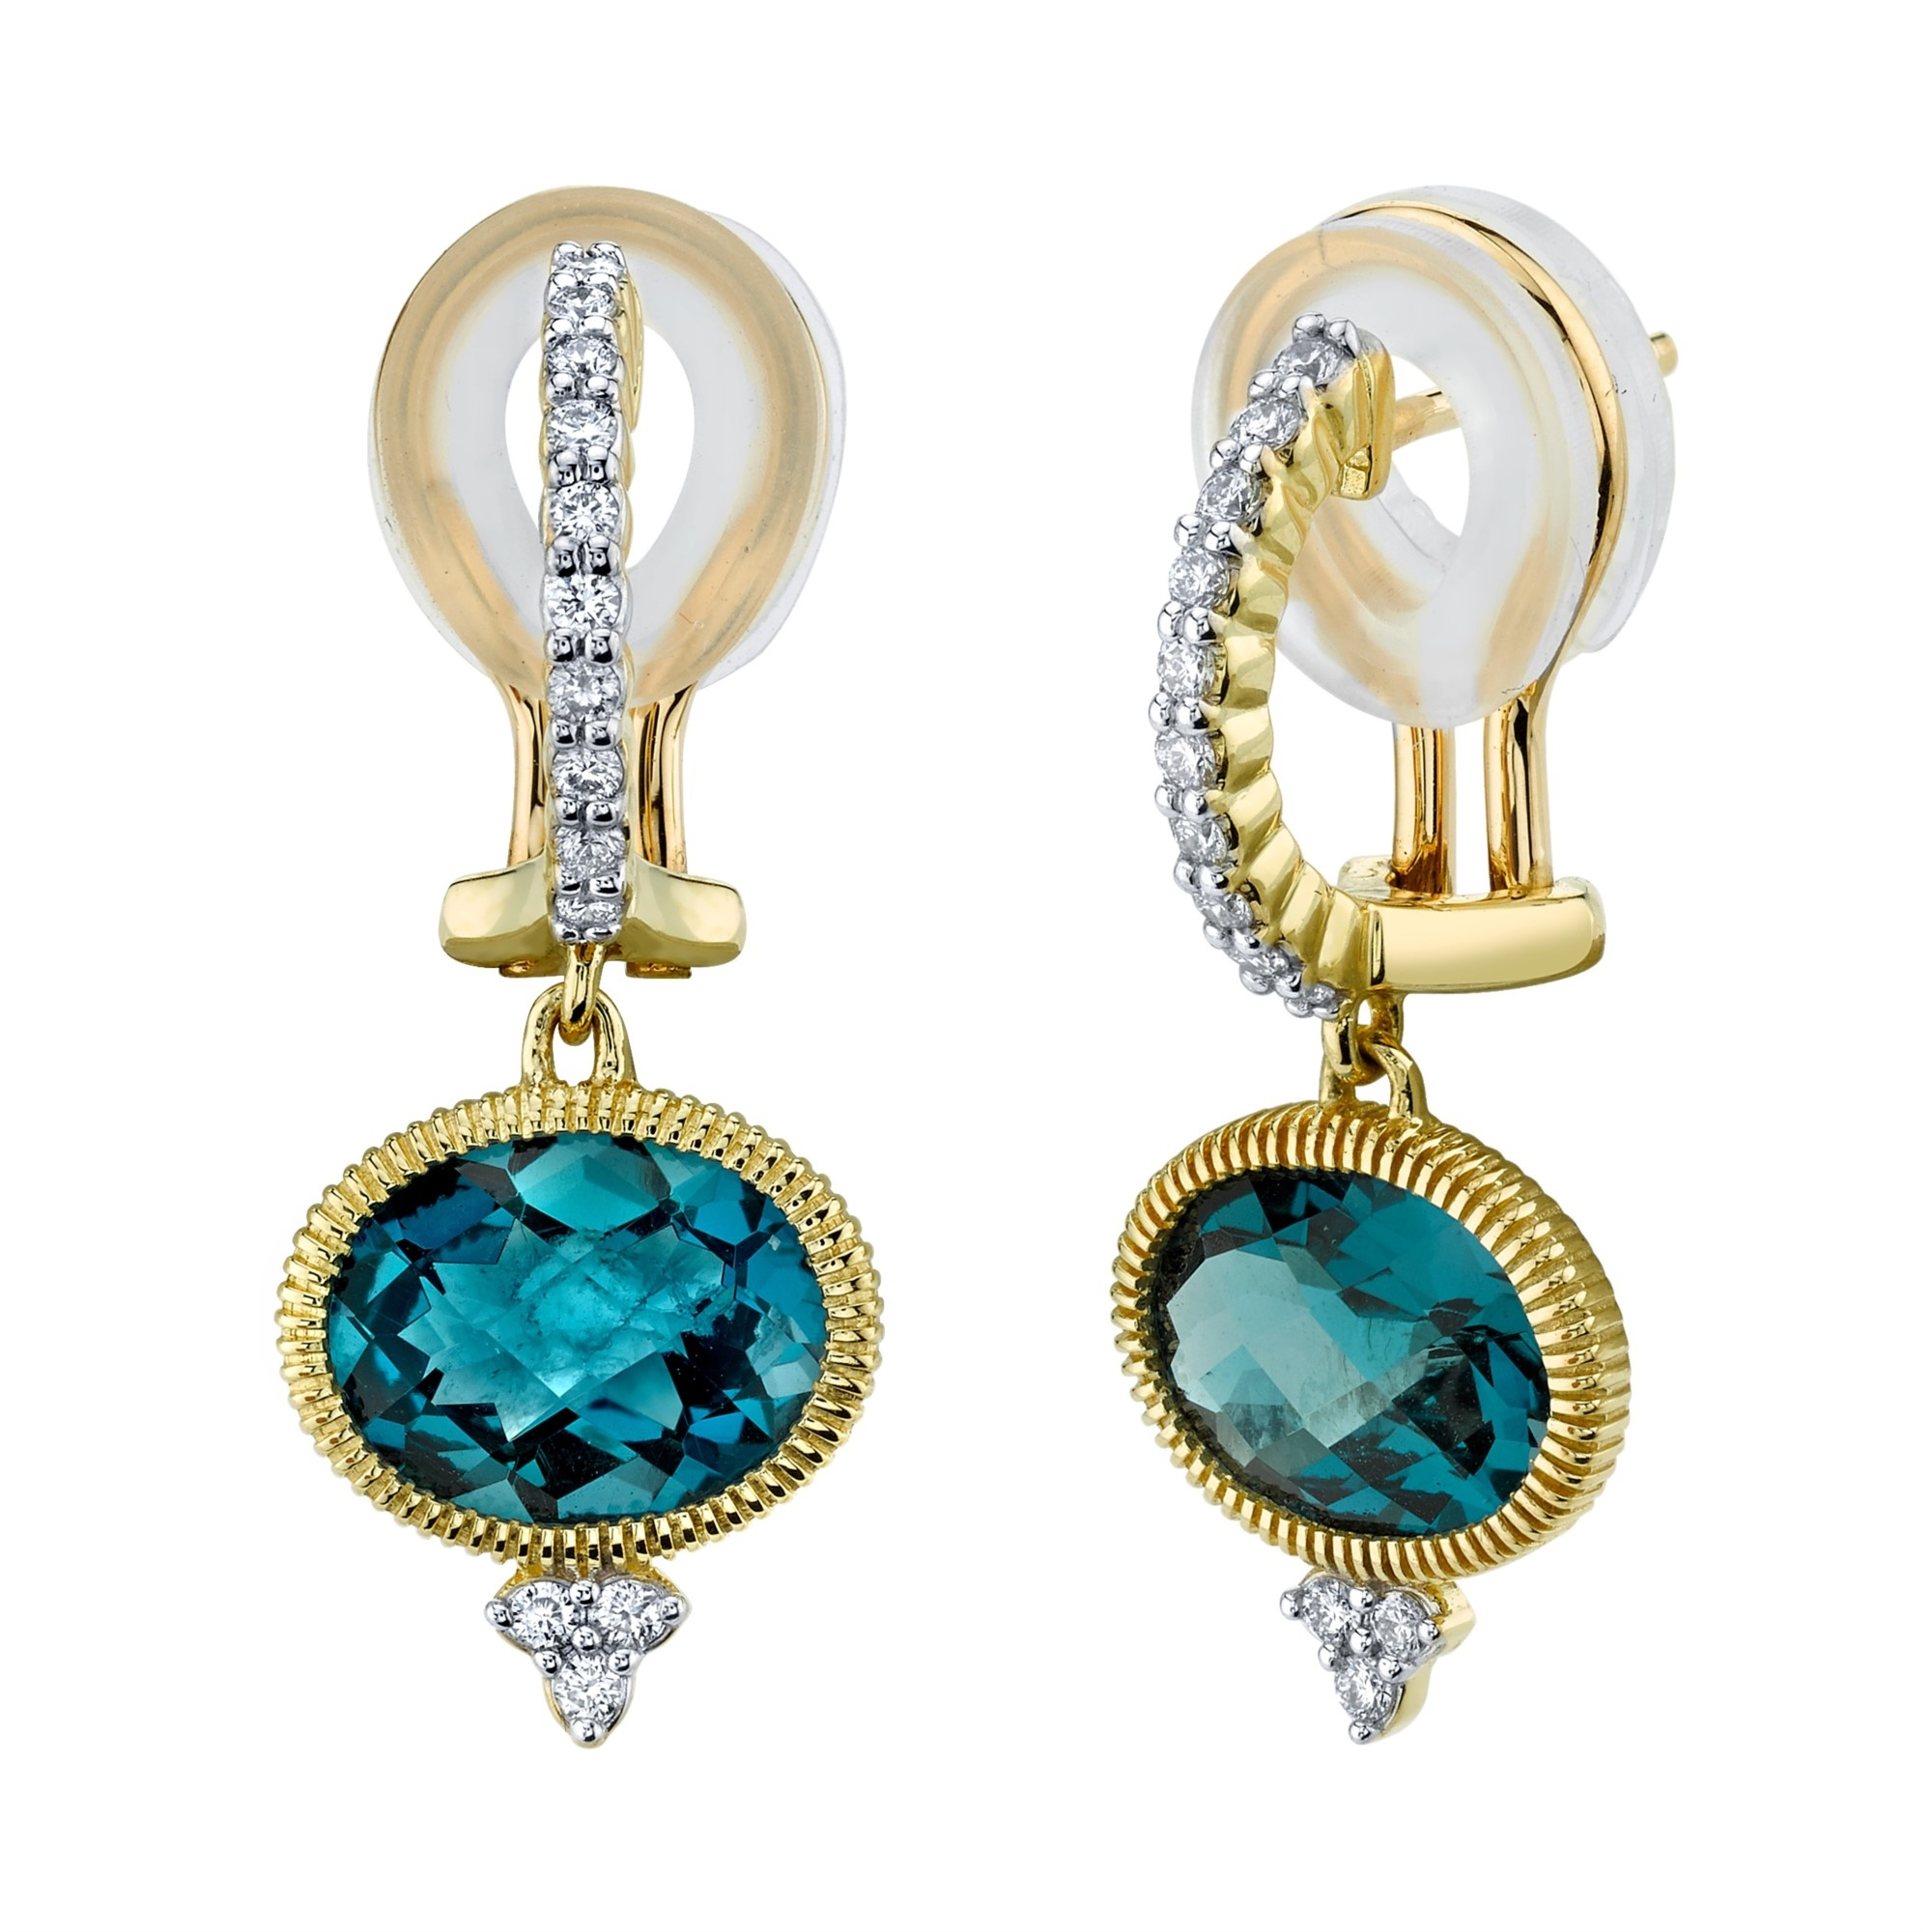 Sloane Street 18K Yellow Gold .26cts  Diamonds Gold Earrings with Stones E003C-LB-WDCB-Y